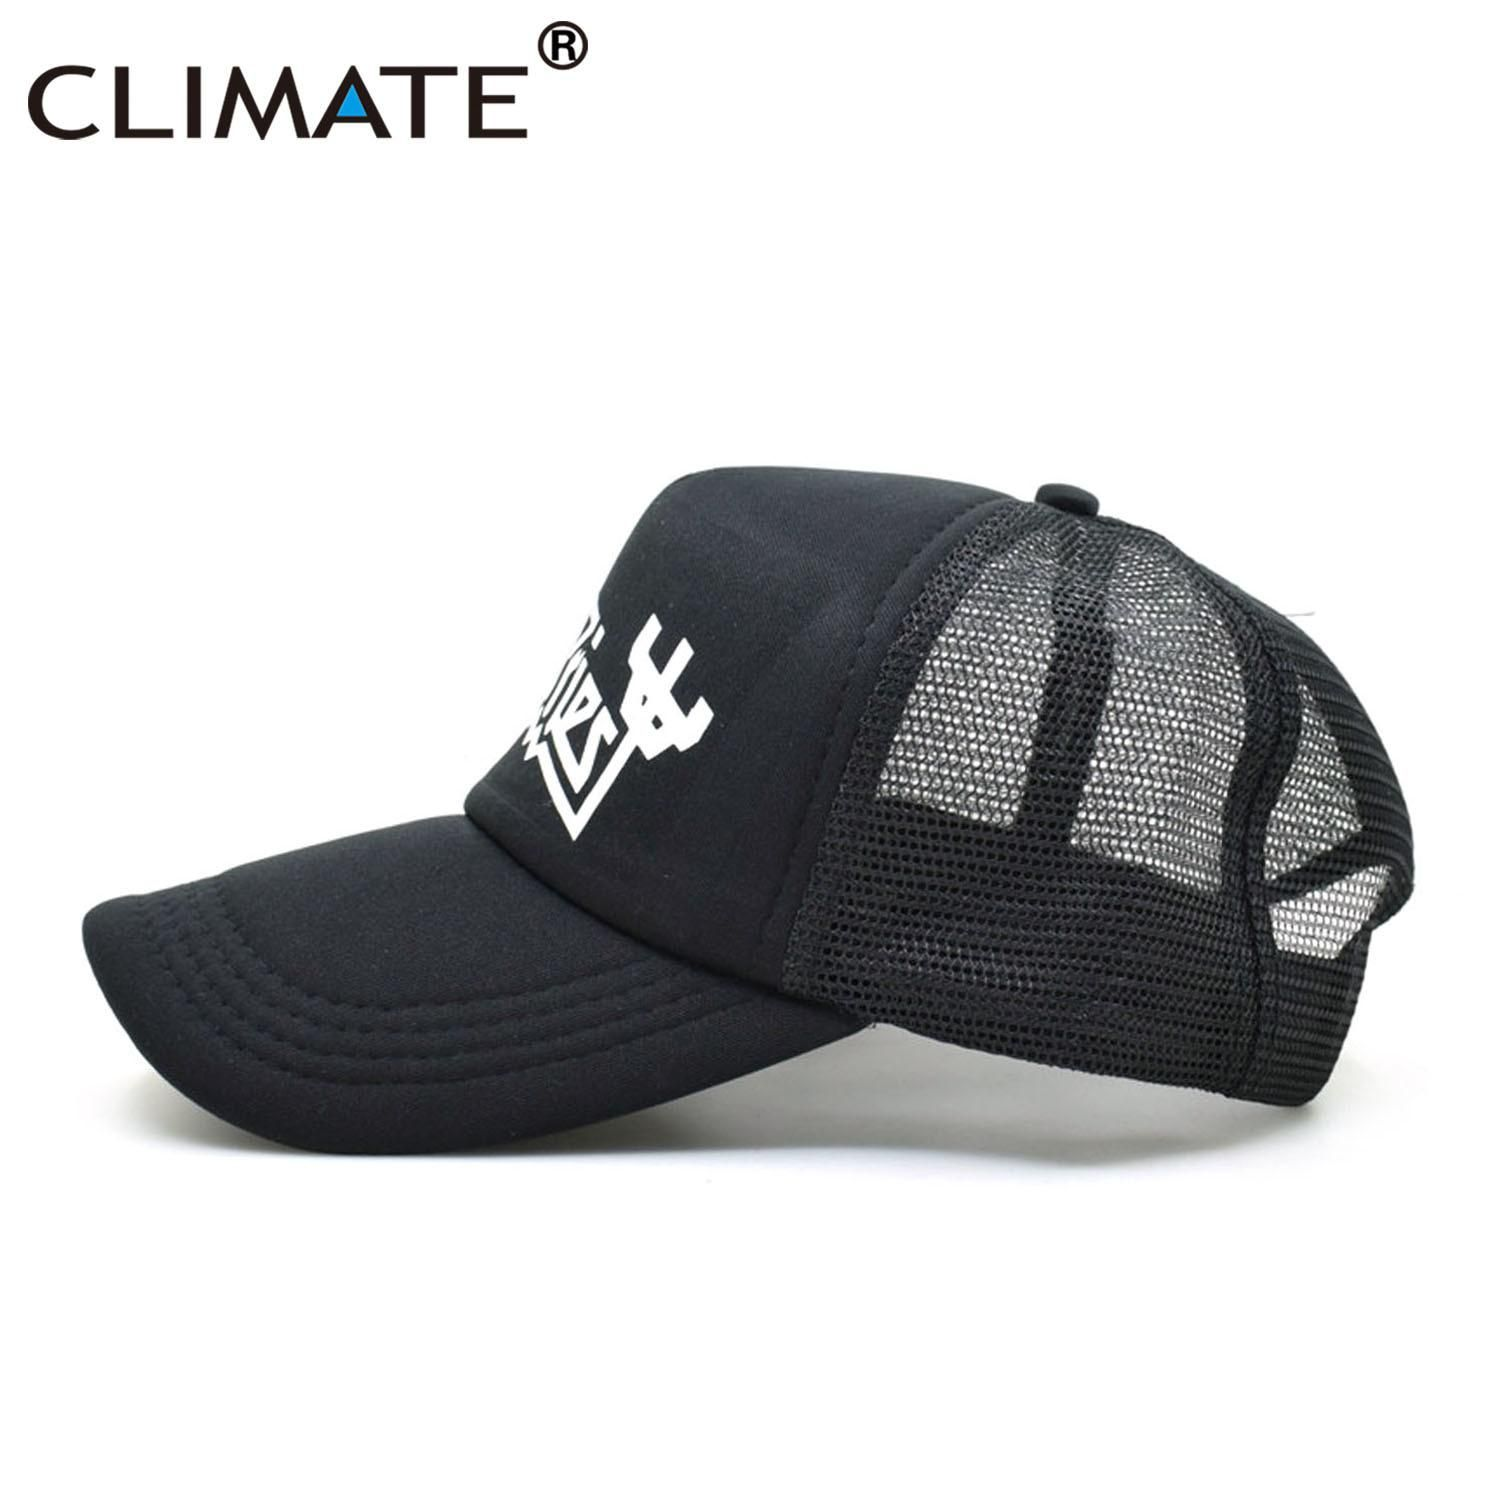 67c6d91979553 CLIMATE Men Women Trucker Caps Priest Cap Men Fans Hot Summer Black ...